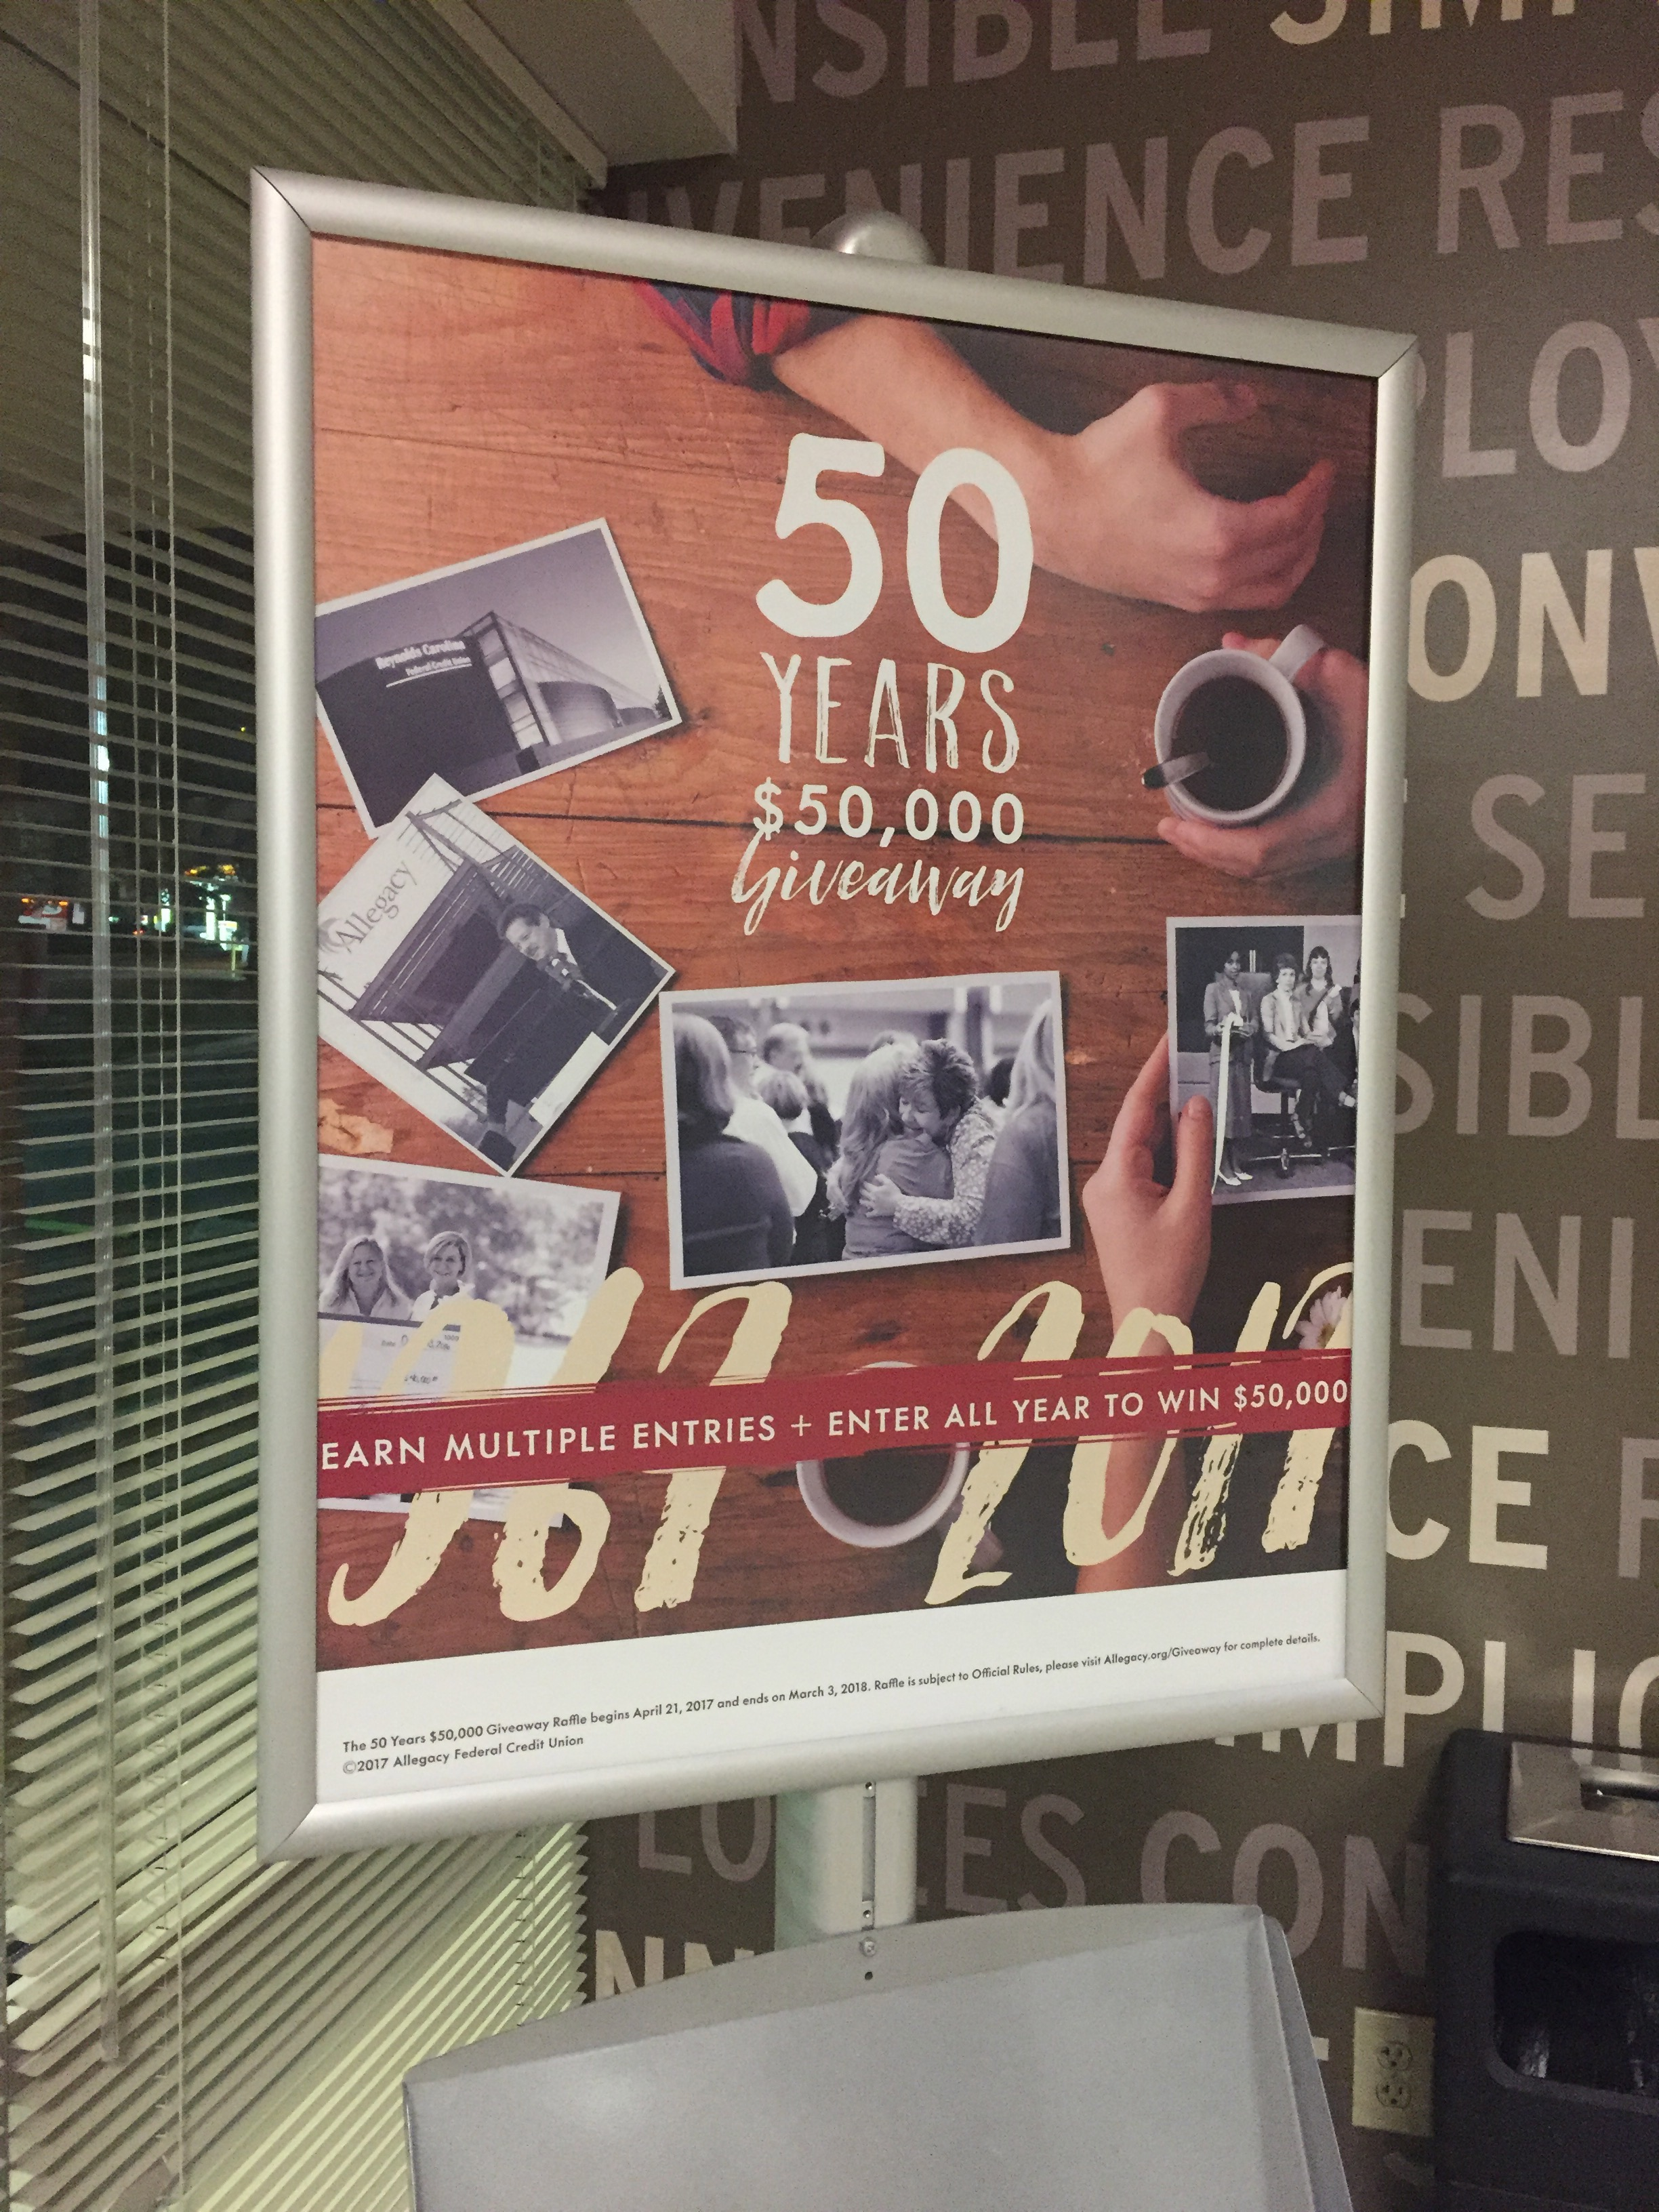 Point of Sale Poster Promoting Anniversary Giveaway Campaign